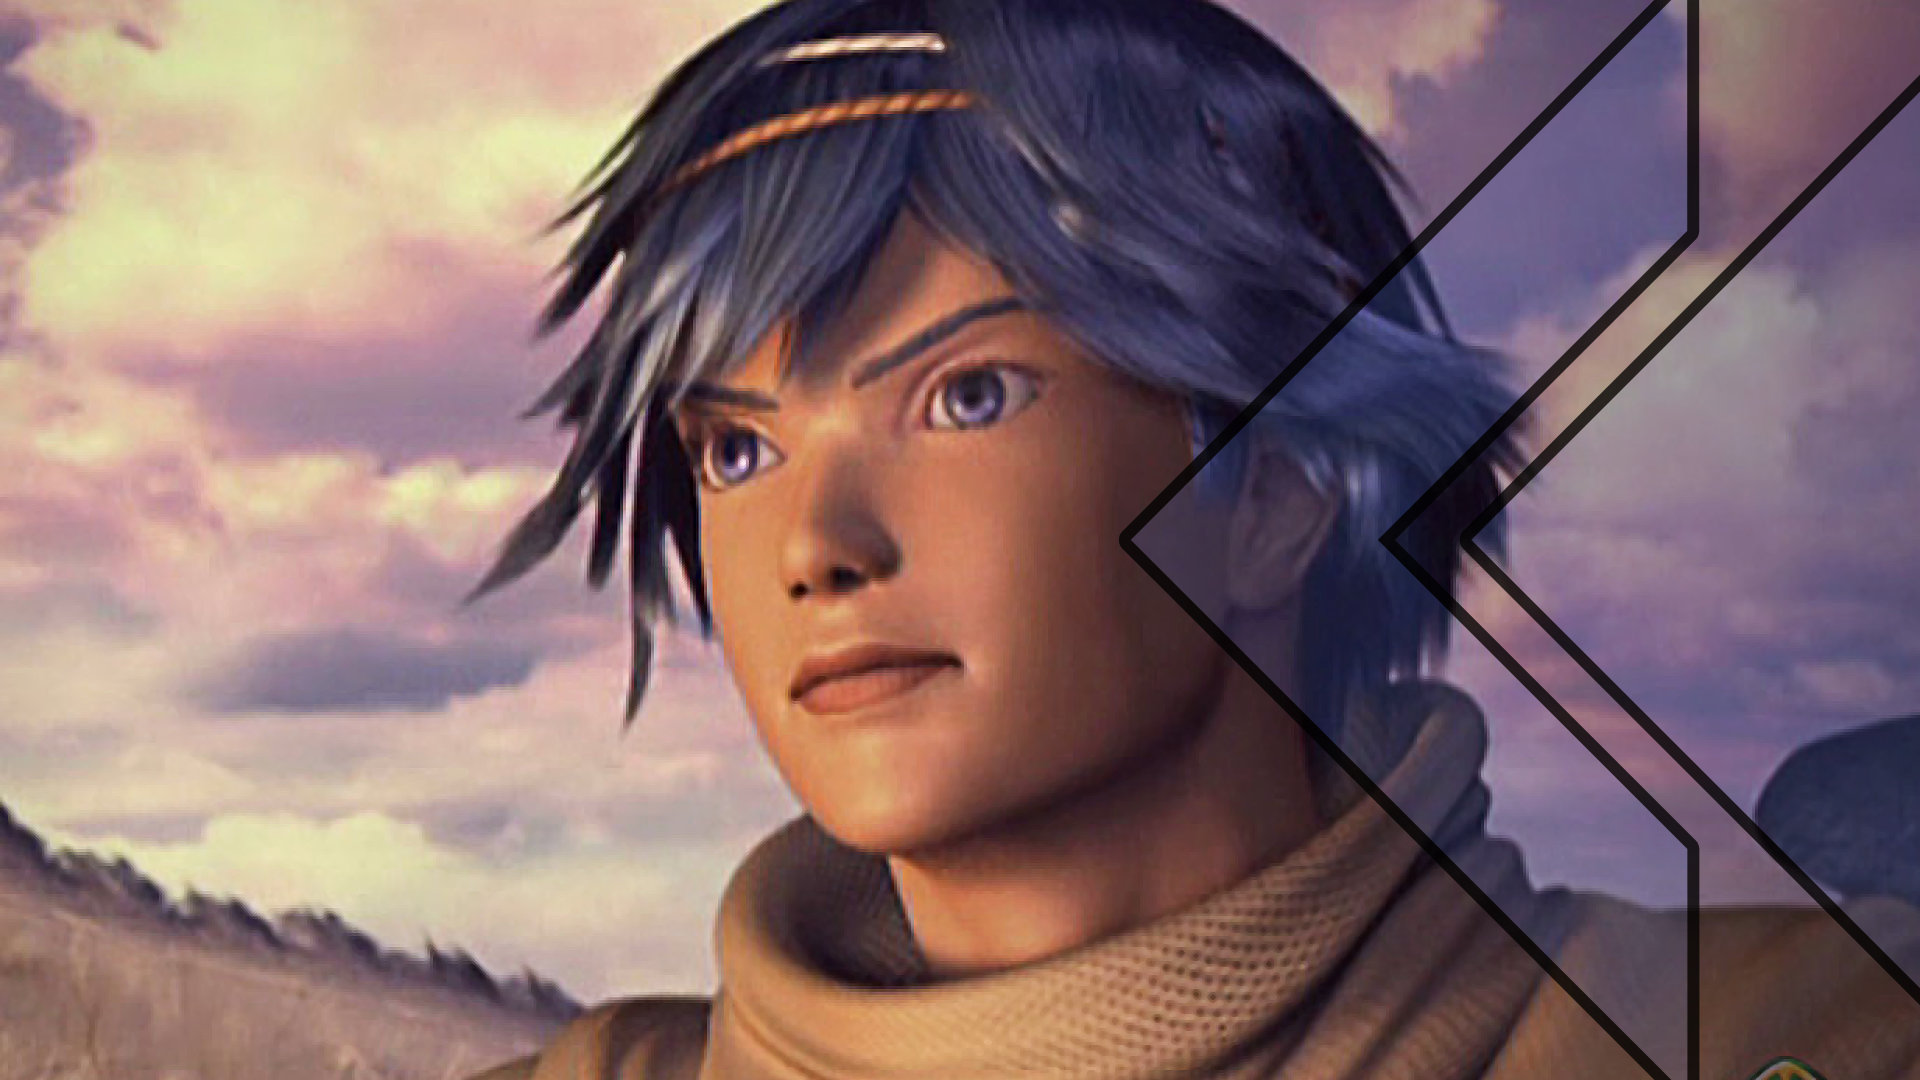 Retro Encounter 272 Baten Kaitos hero looks out in the distance during a sunset with determination.